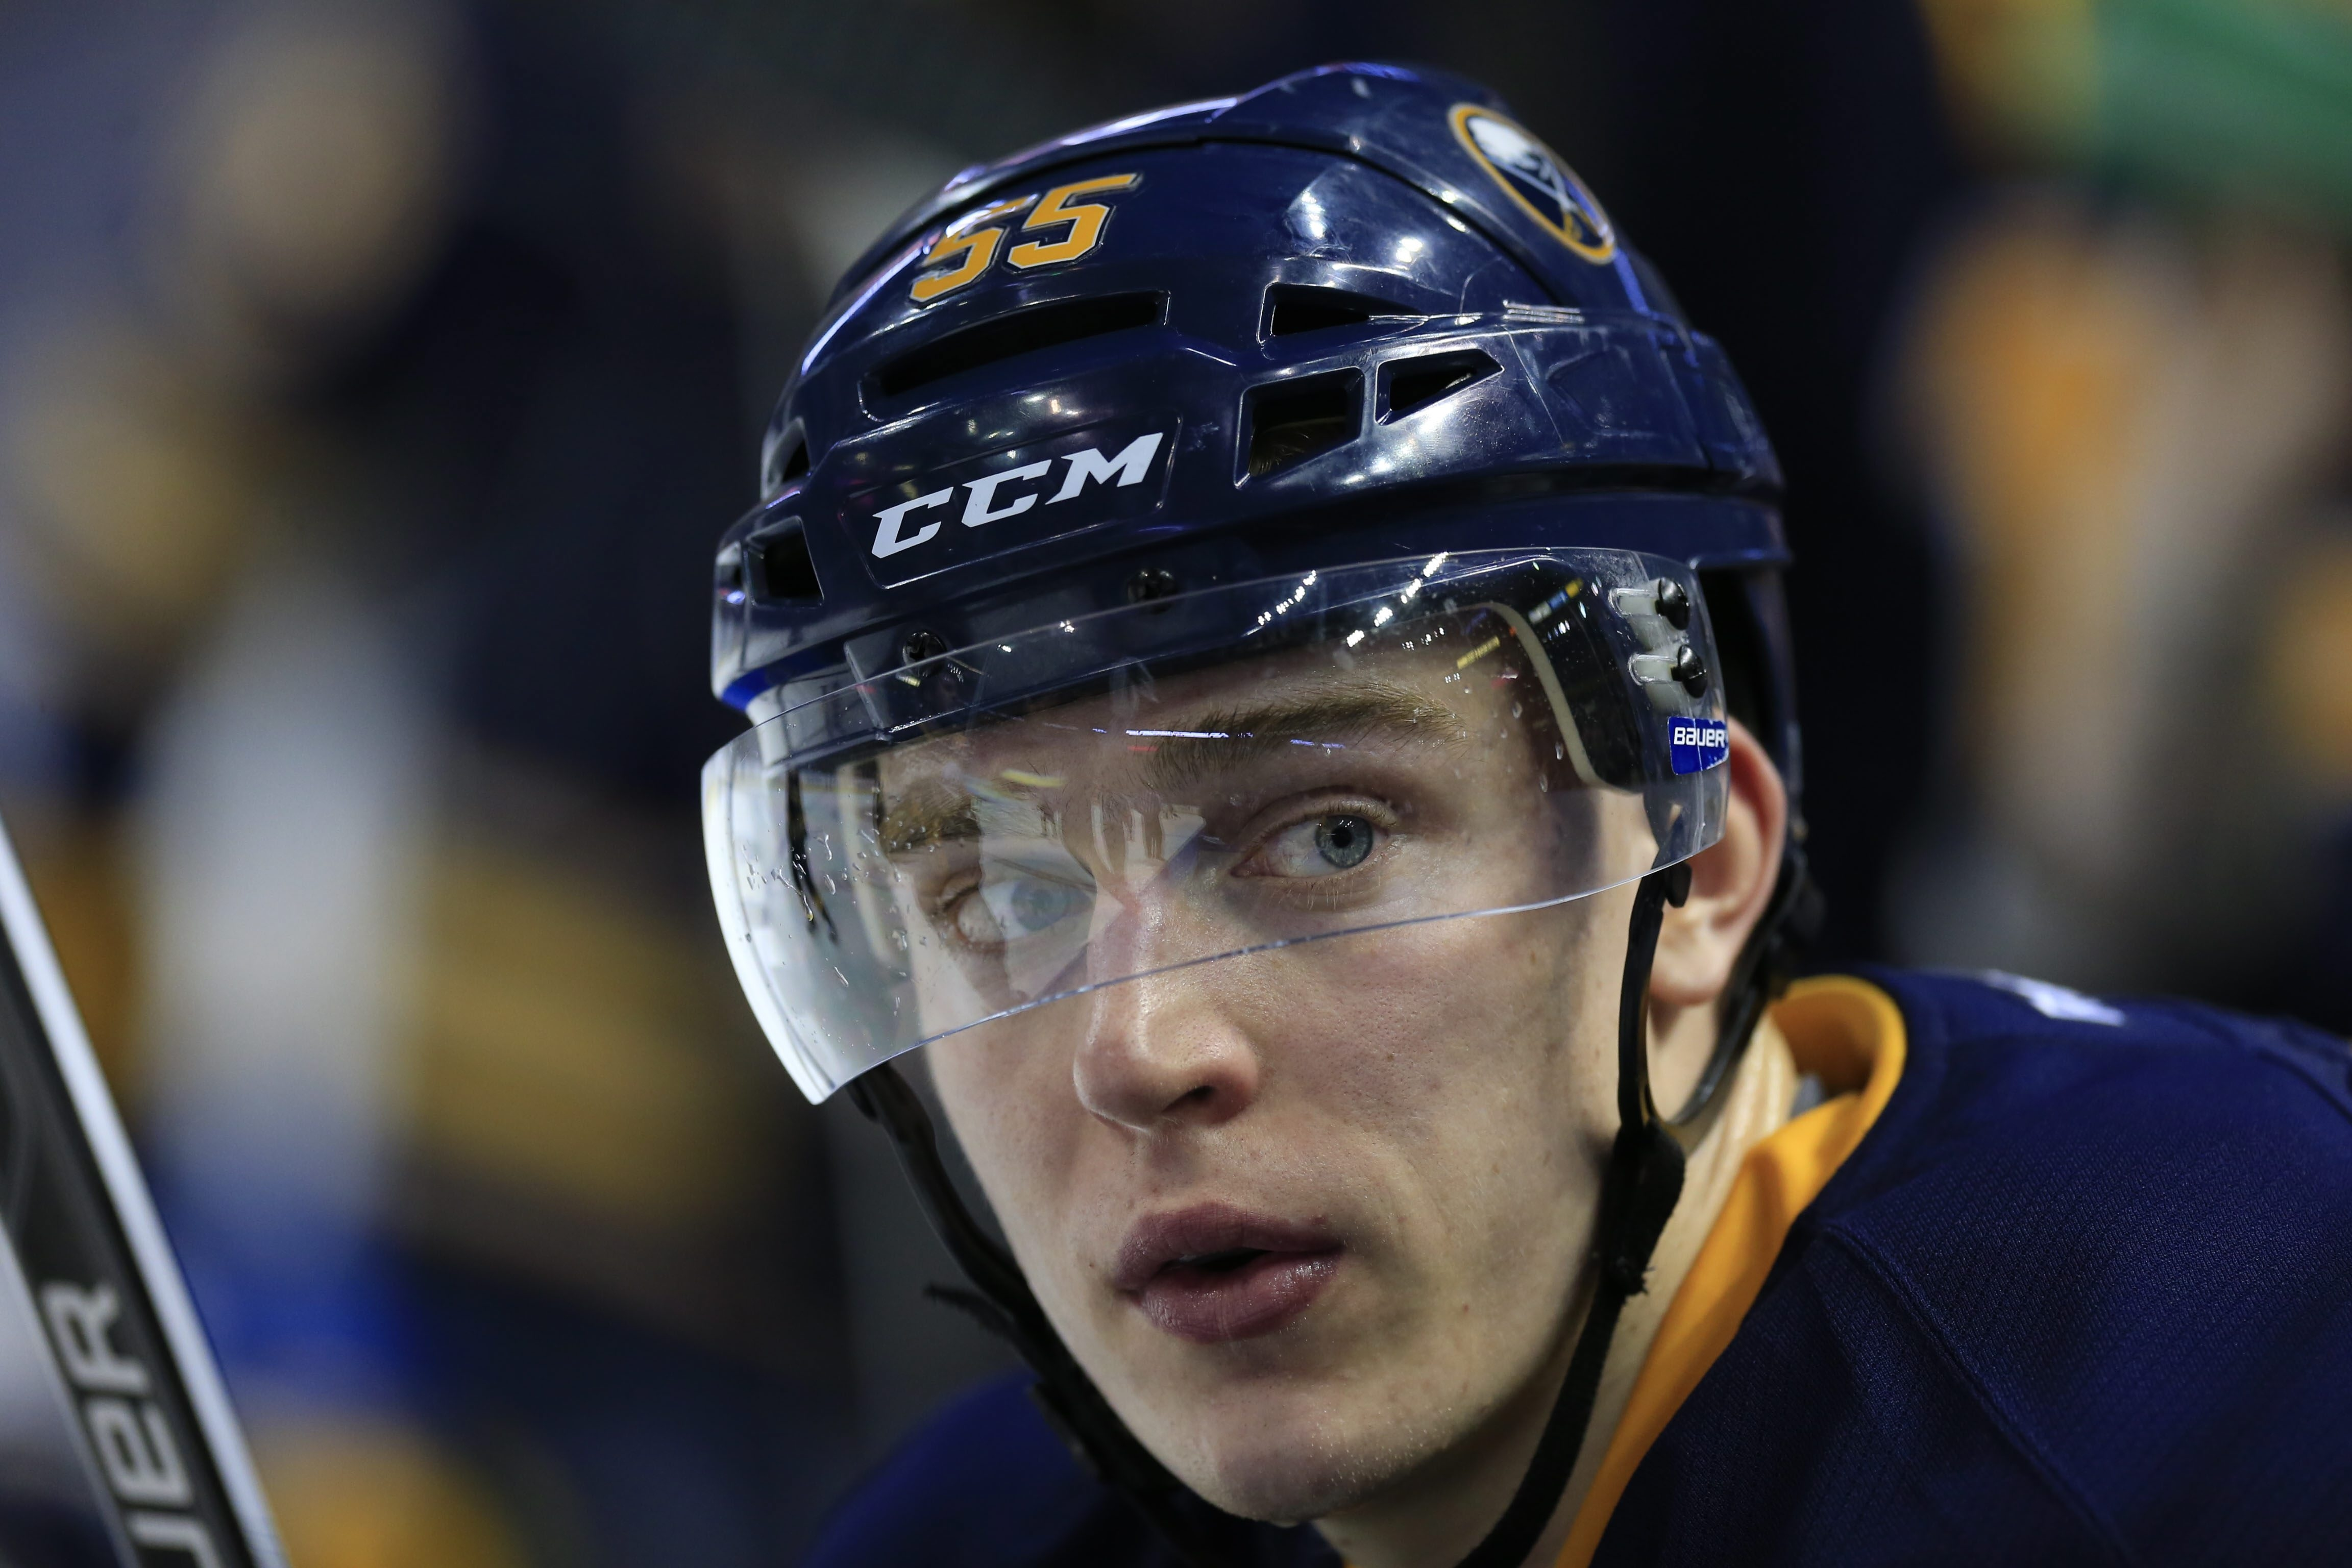 Sabres defenseman Rasmus Ristolainen is confident his contract situation will be resolved. (Harry Scull Jr./Buffalo News)